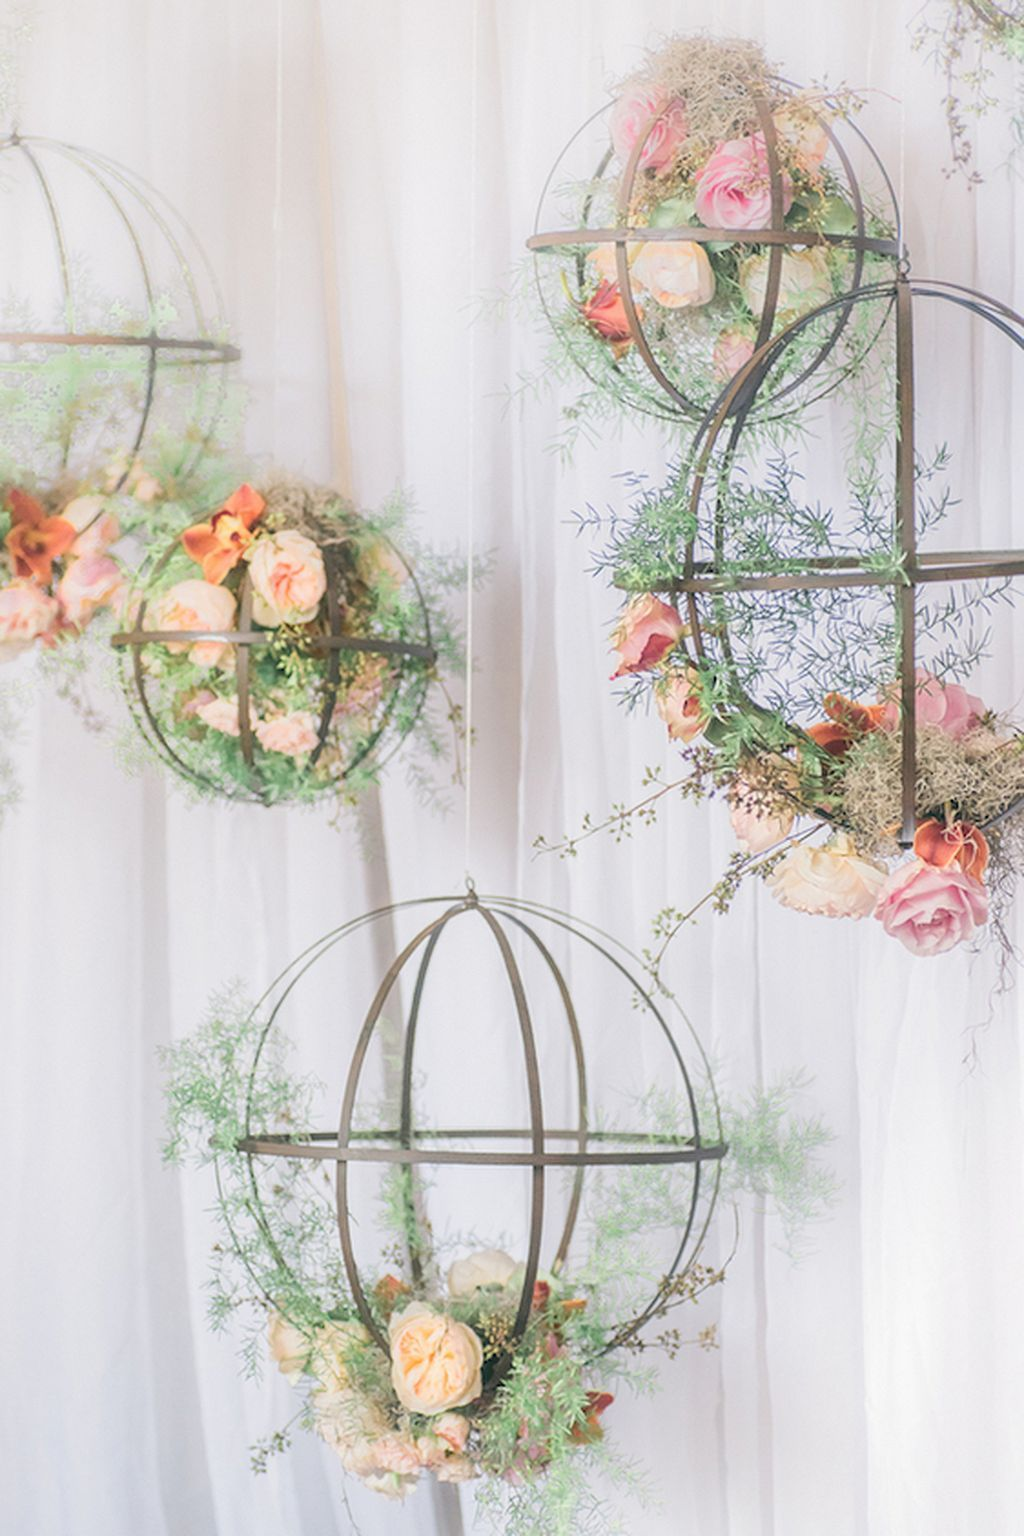 Hanging lights wedding decor   Beautiful Hanging Wedding Decor Ideas  Decoration Weddings